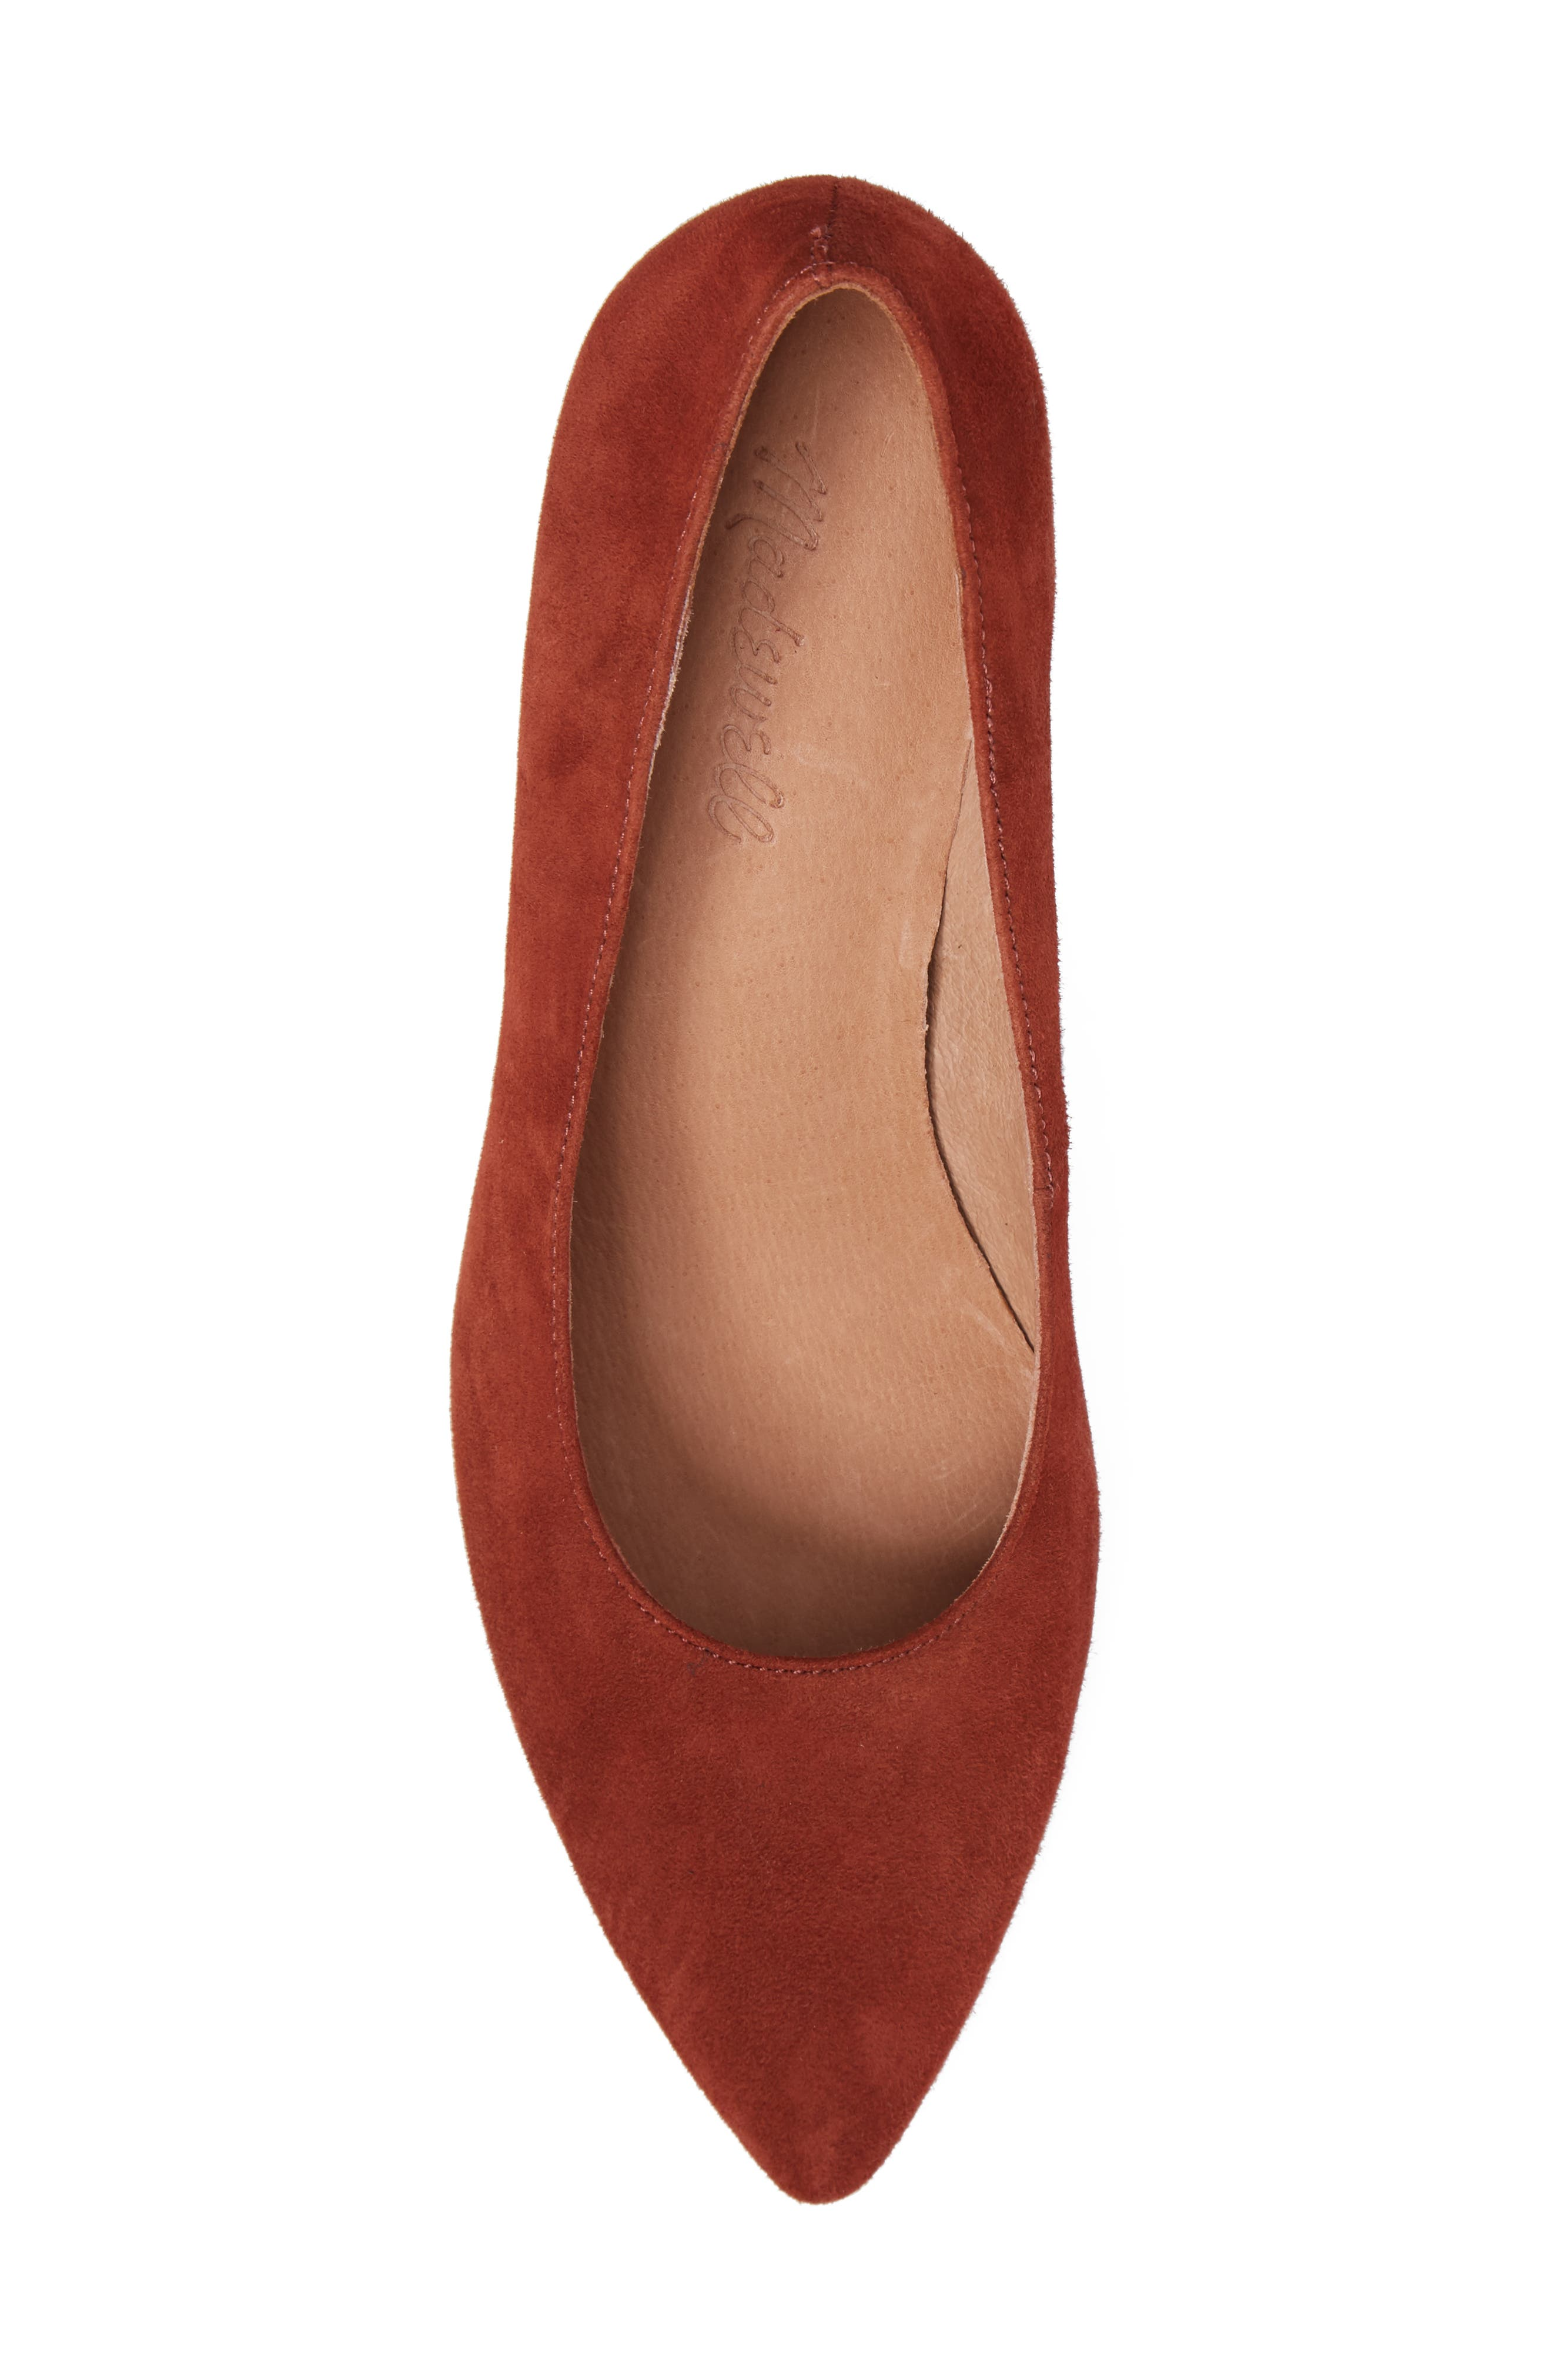 Rivka Pointy Toe Pump,                             Alternate thumbnail 5, color,                             Vintage Redwood Suede